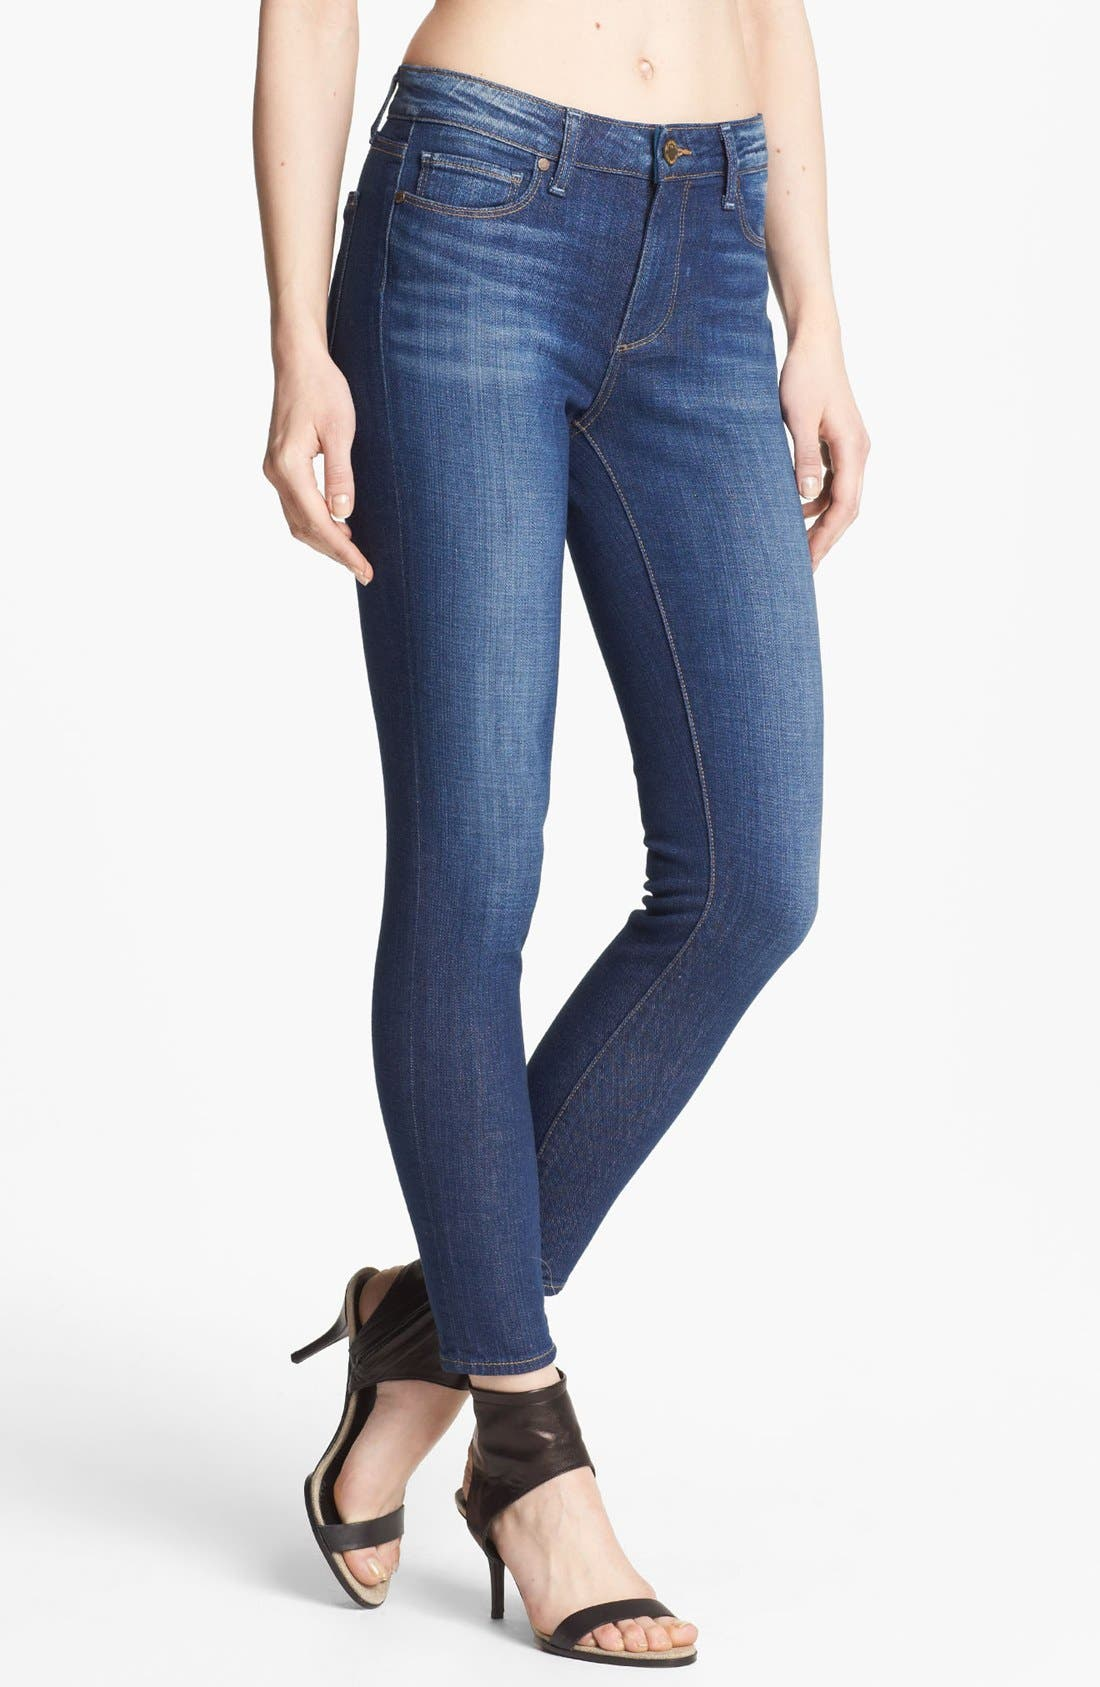 Alternate Image 1 Selected - Paige Denim 'Hoxton' Ankle Jeans (Journey)